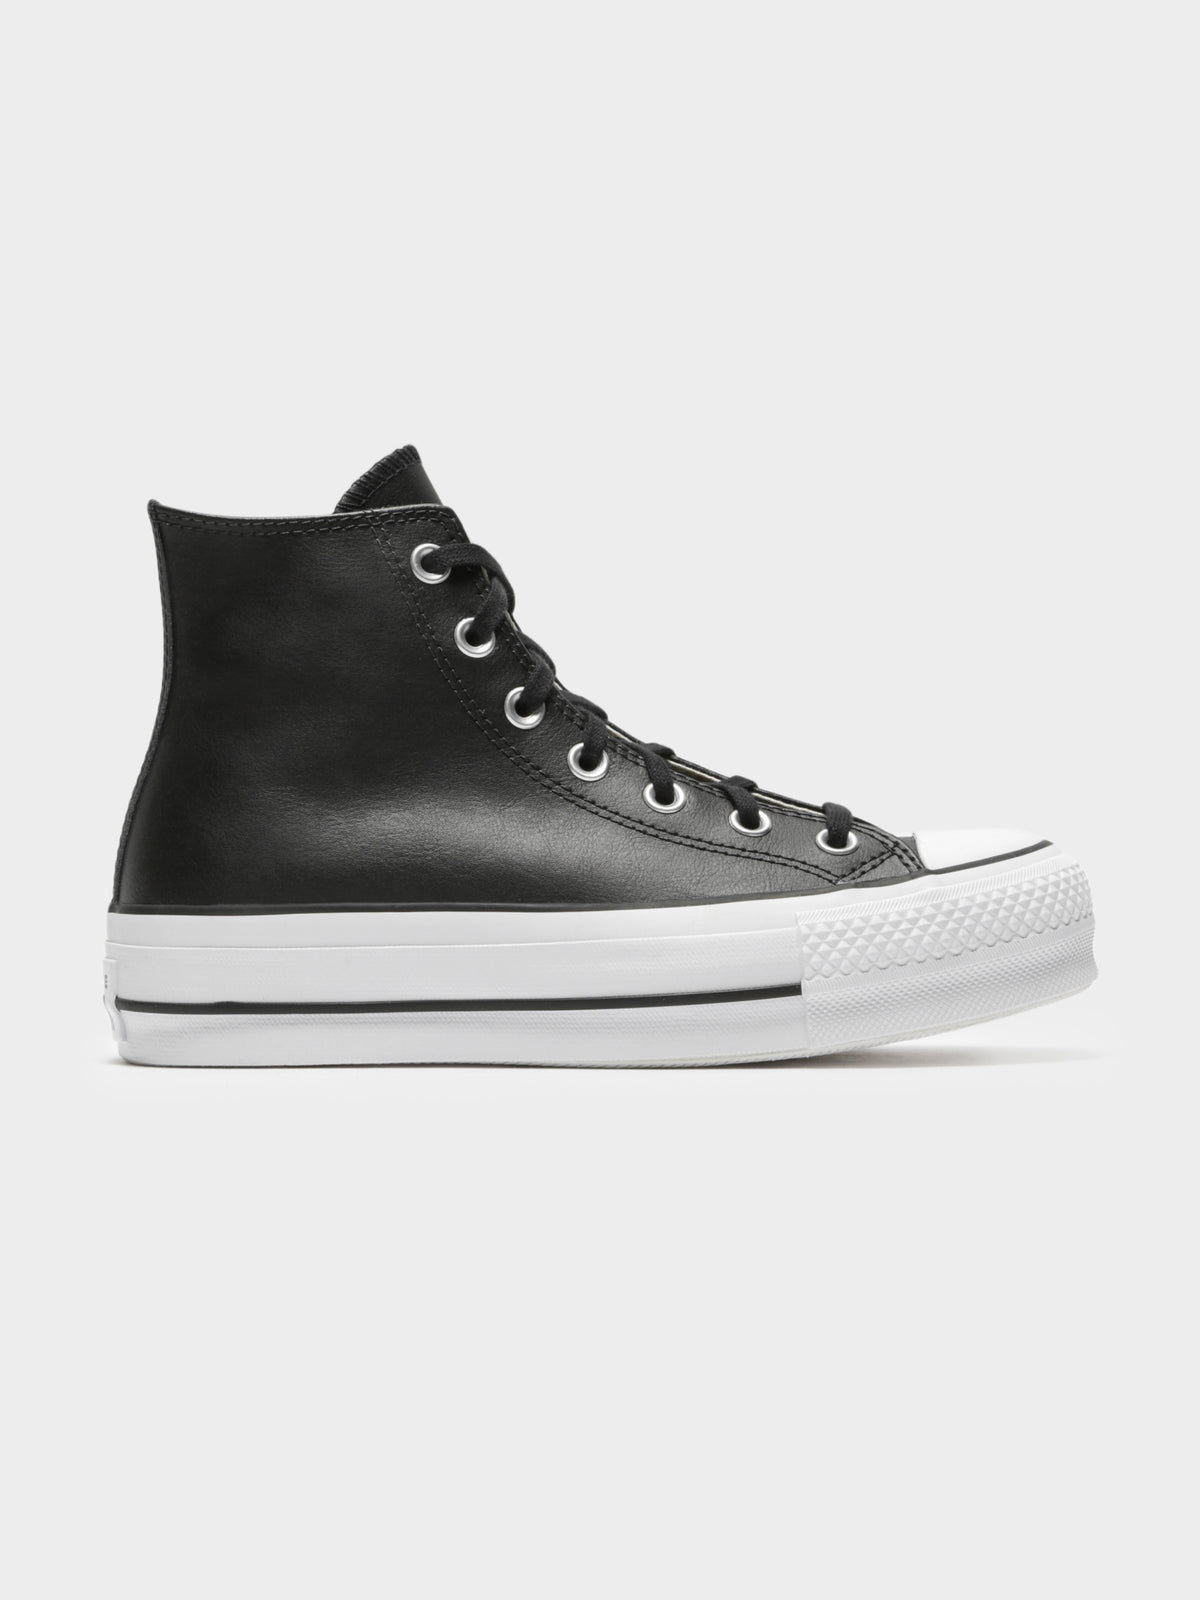 Chuck Taylor All Star Lift Clean Hi -Top Sneakers in Black